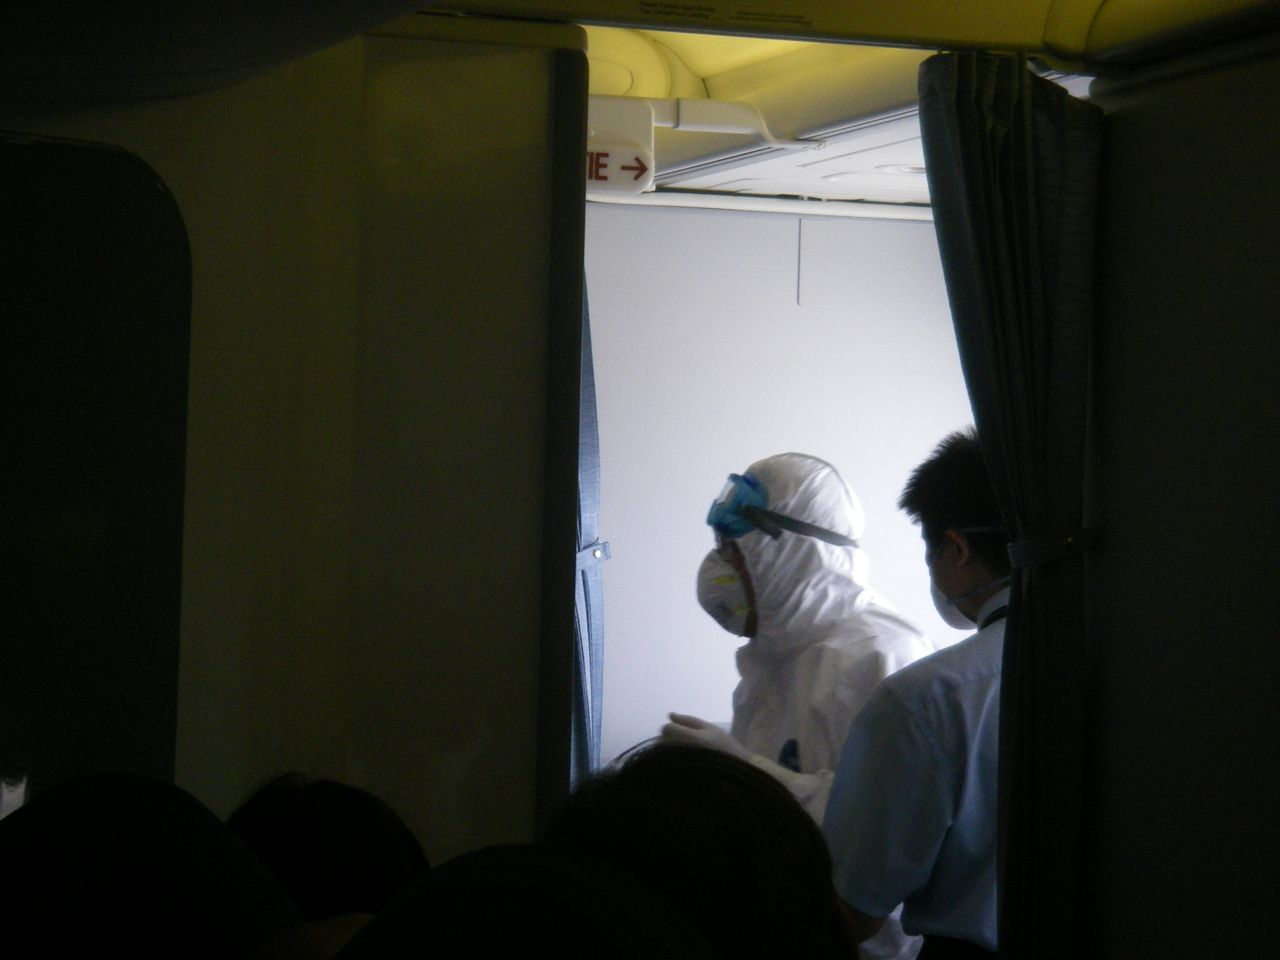 quarantine officials on board